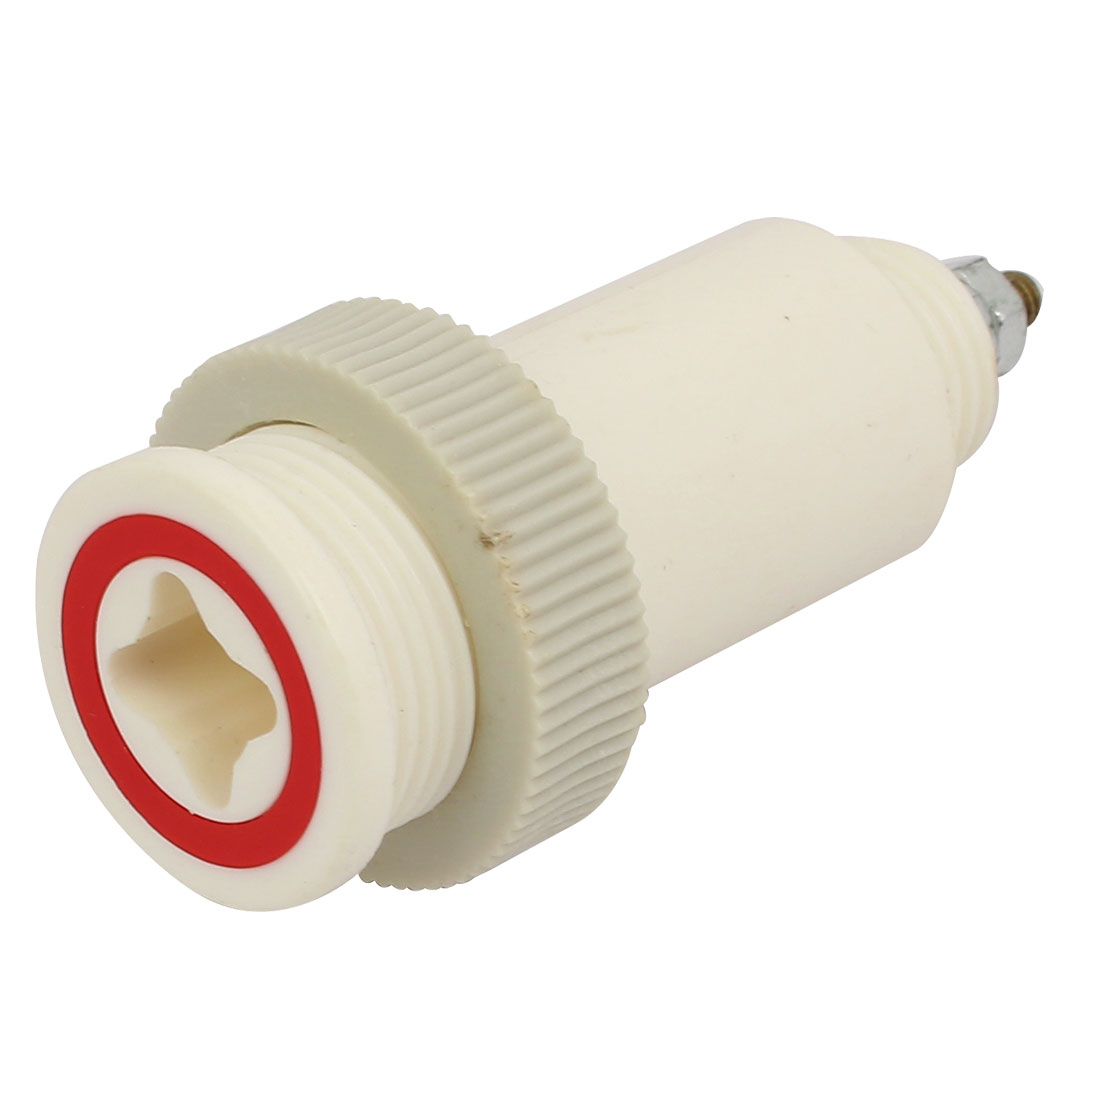 Plastic Socket Spare Part for High Voltage Tester Machine